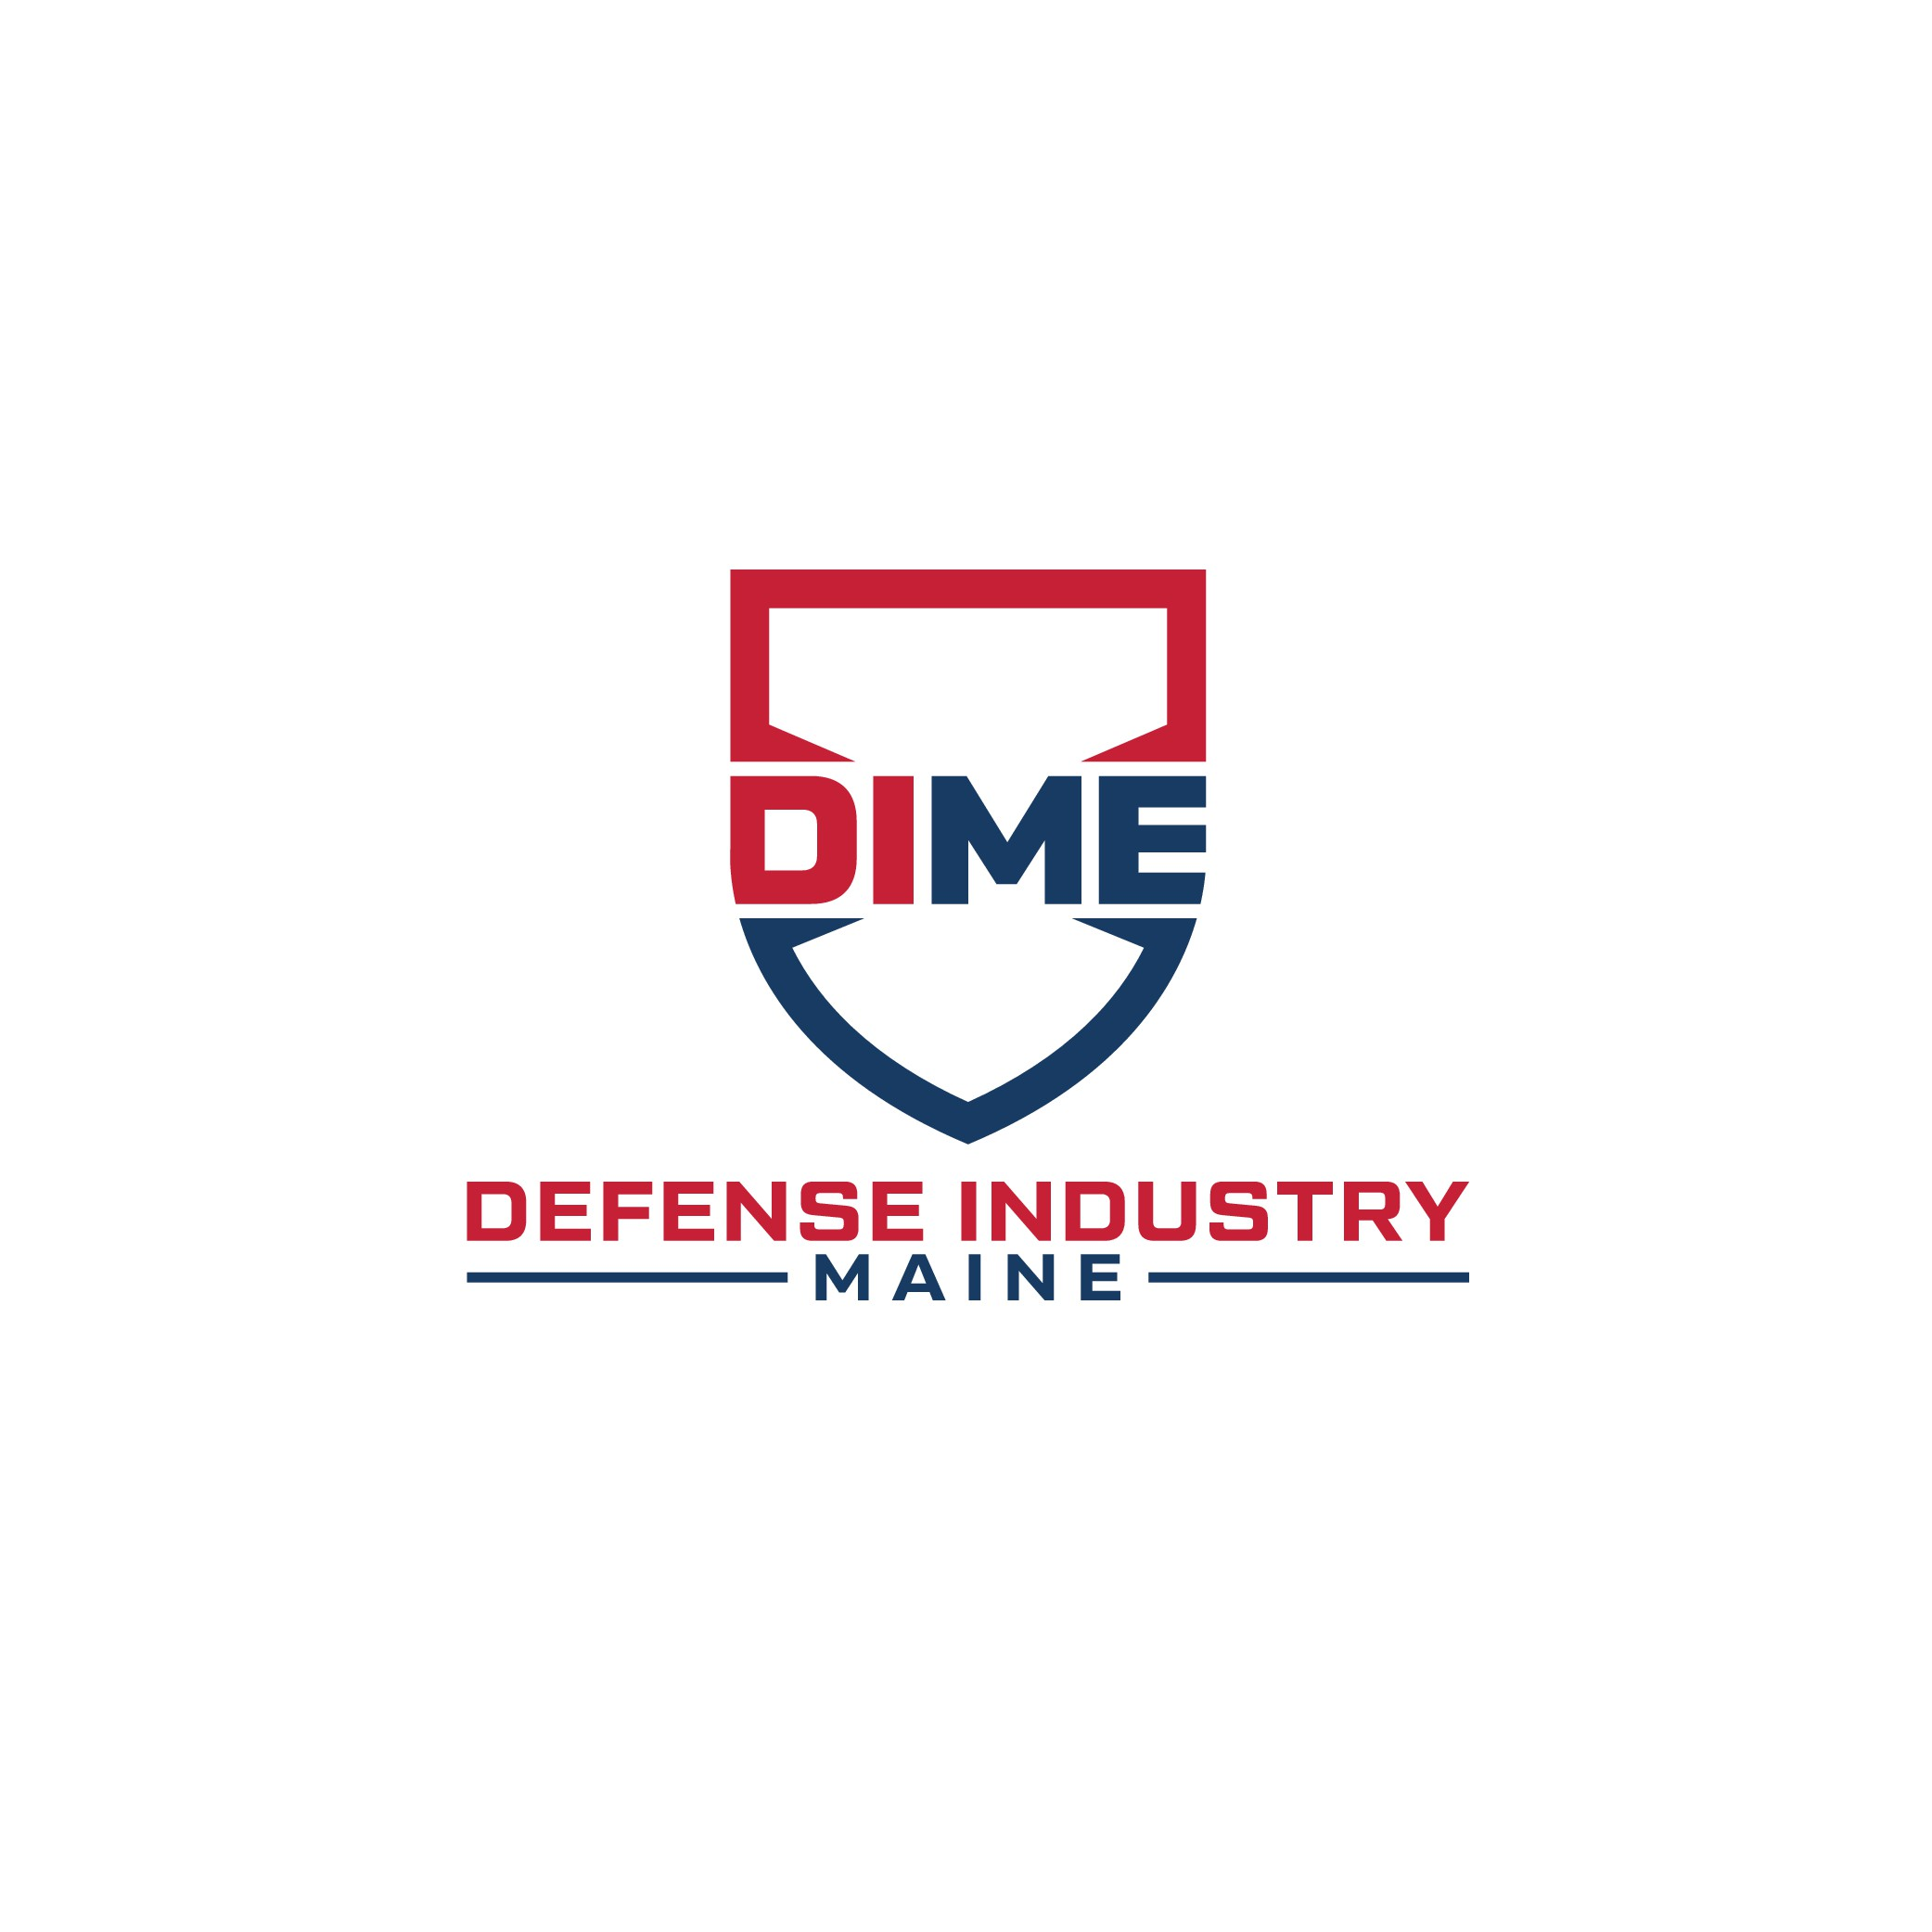 State of Maine's Defense Industry Logo